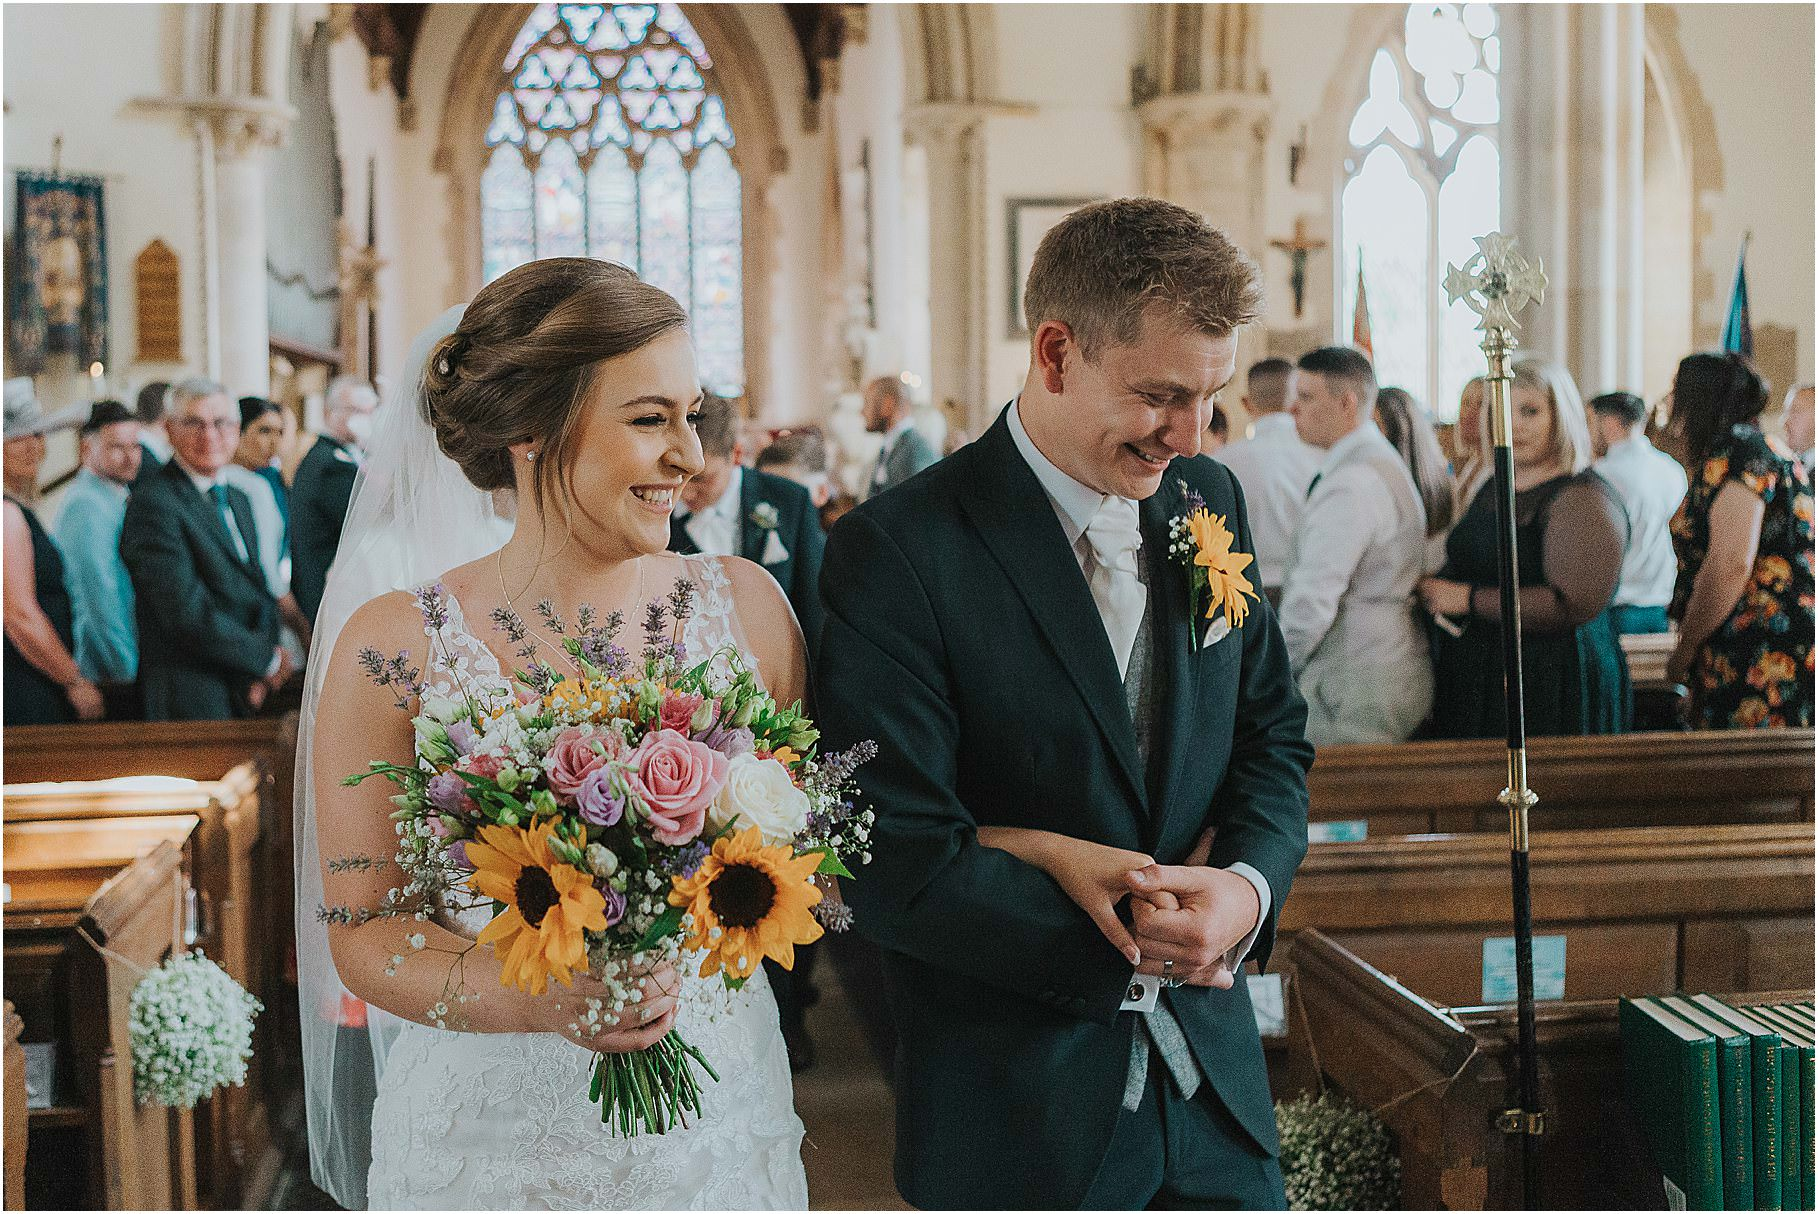 Rutland Weddings Exton Hall Exton Oakham Rutland Water Photographer 1057 - Mr and Mrs Barker // RUTLAND WEDDING